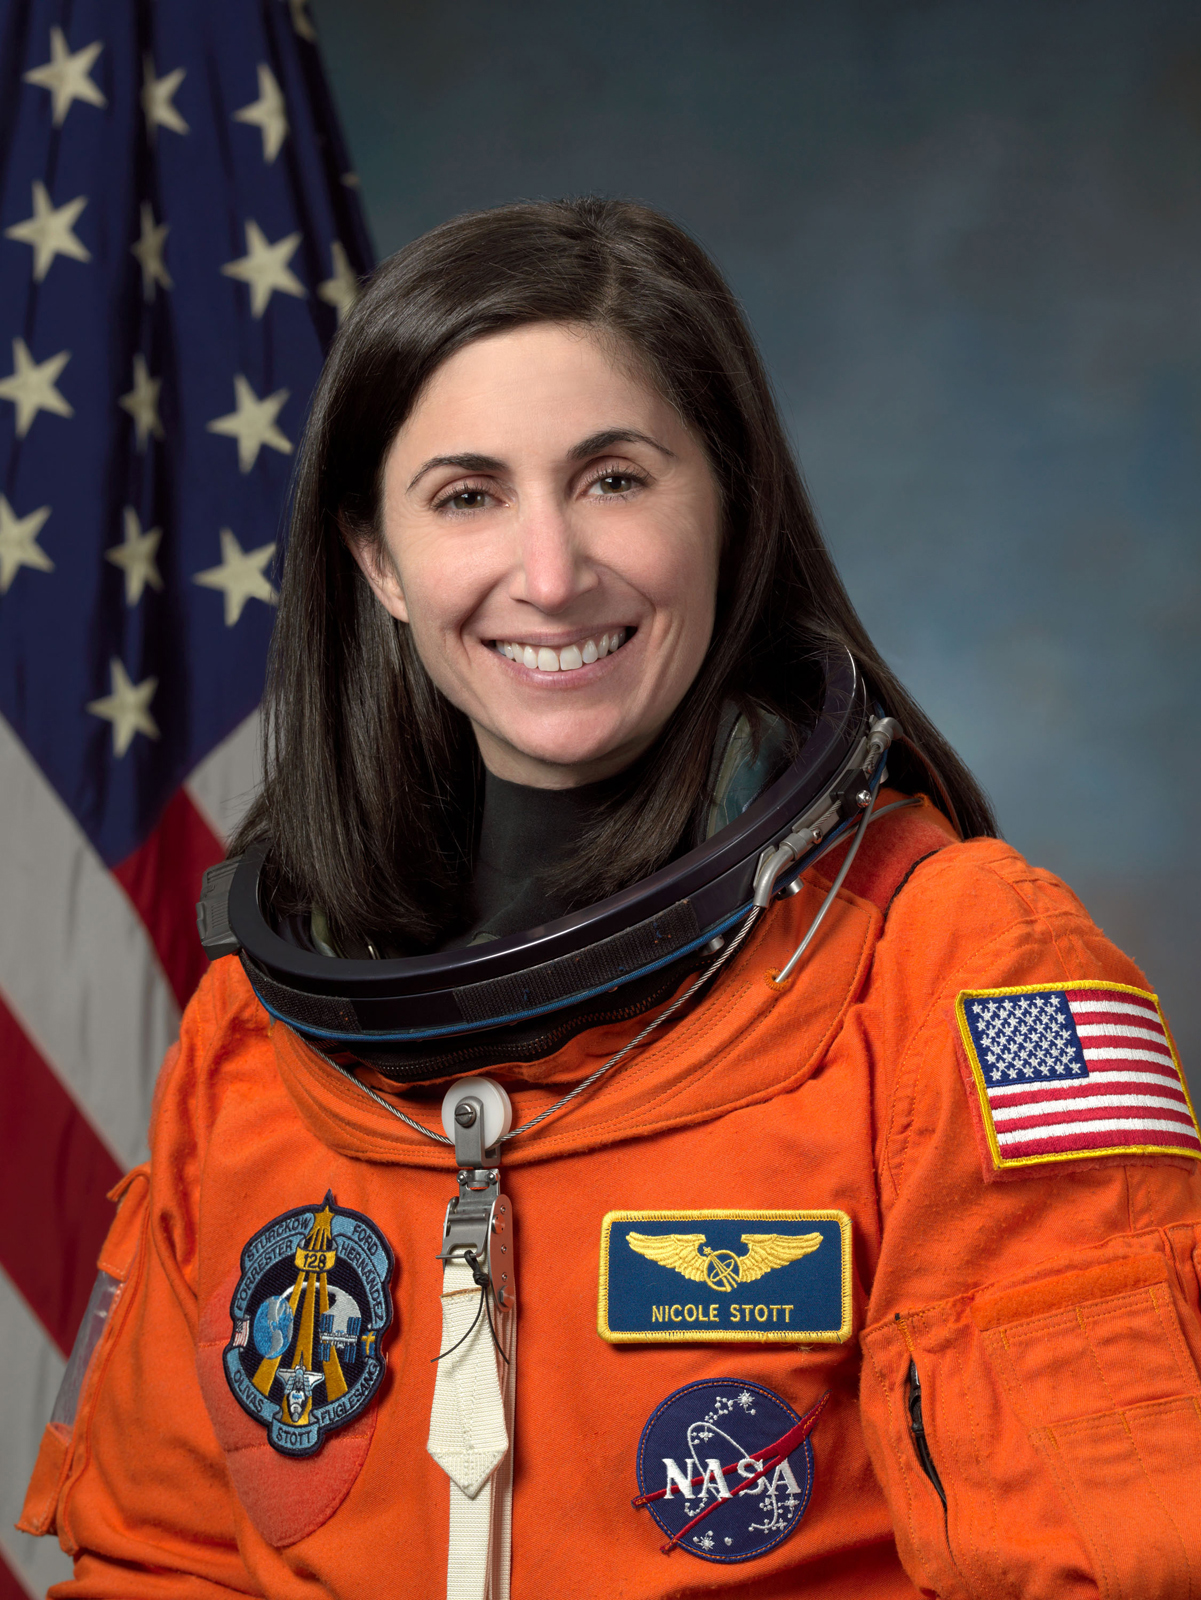 Astronaut Nicole Stott, mission specialist and flight engineer<br /><br />Courtesy of NASA